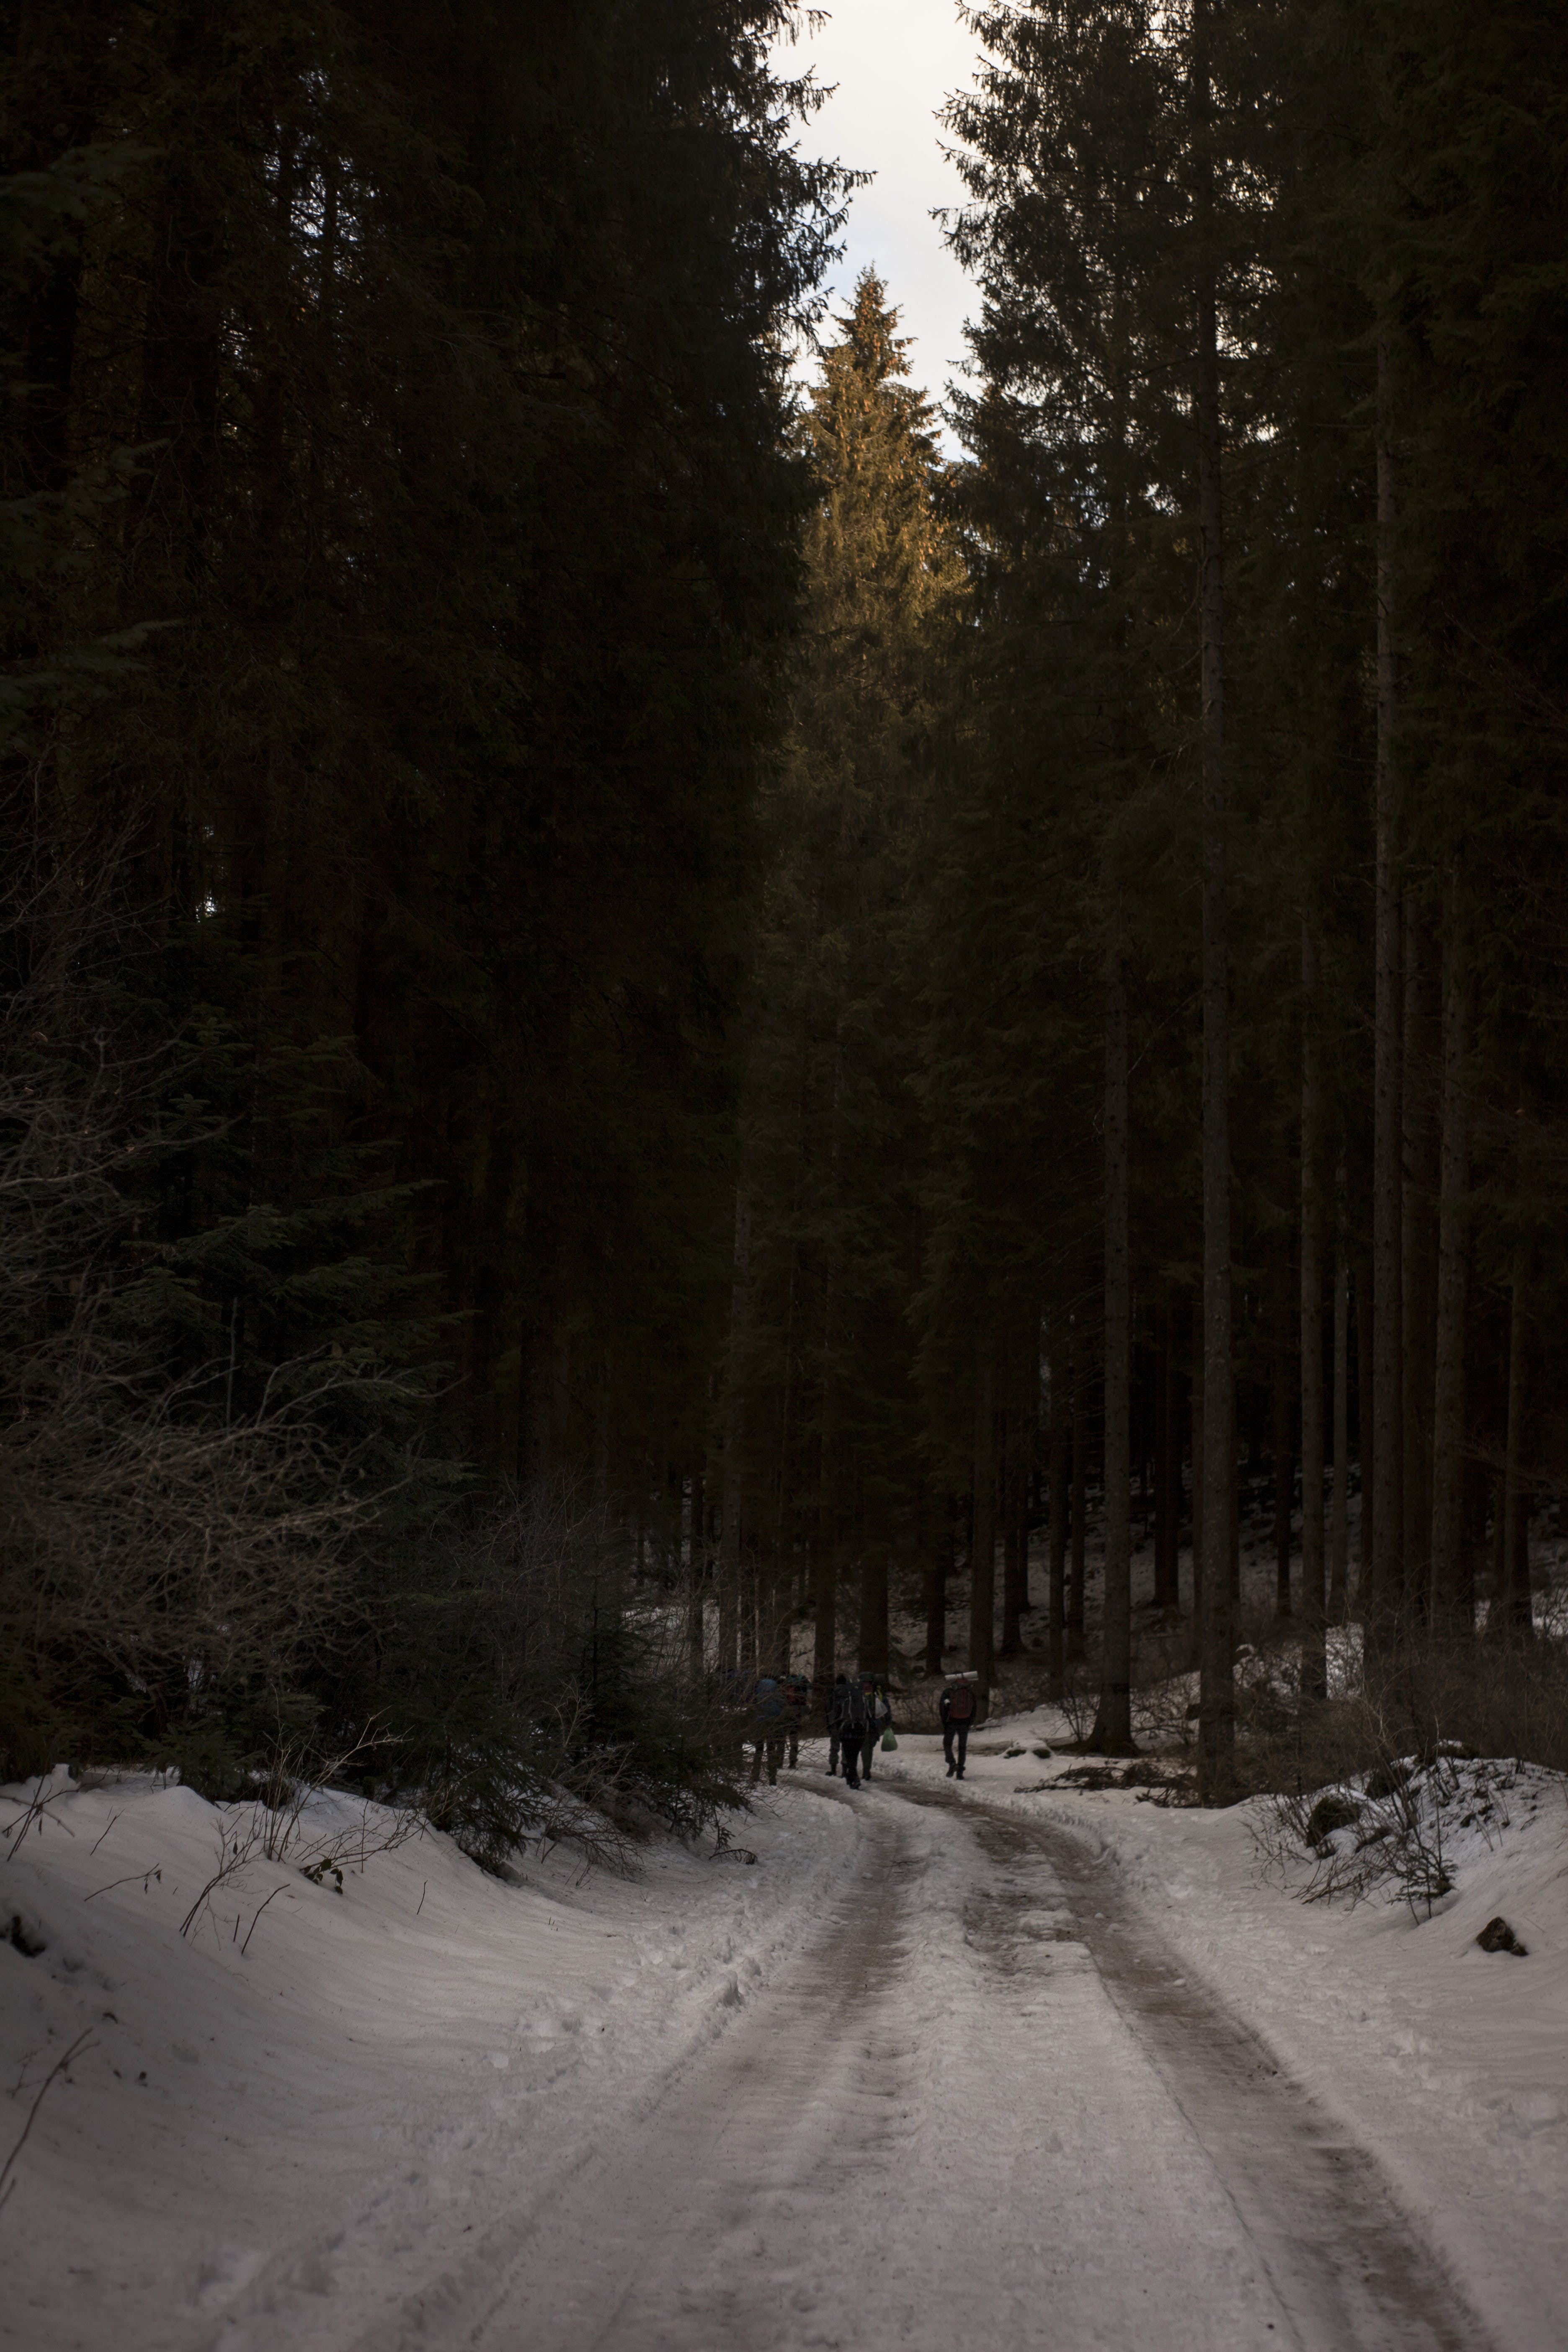 Two People Walking on Pathway Covered by Snow Near Tall Trees